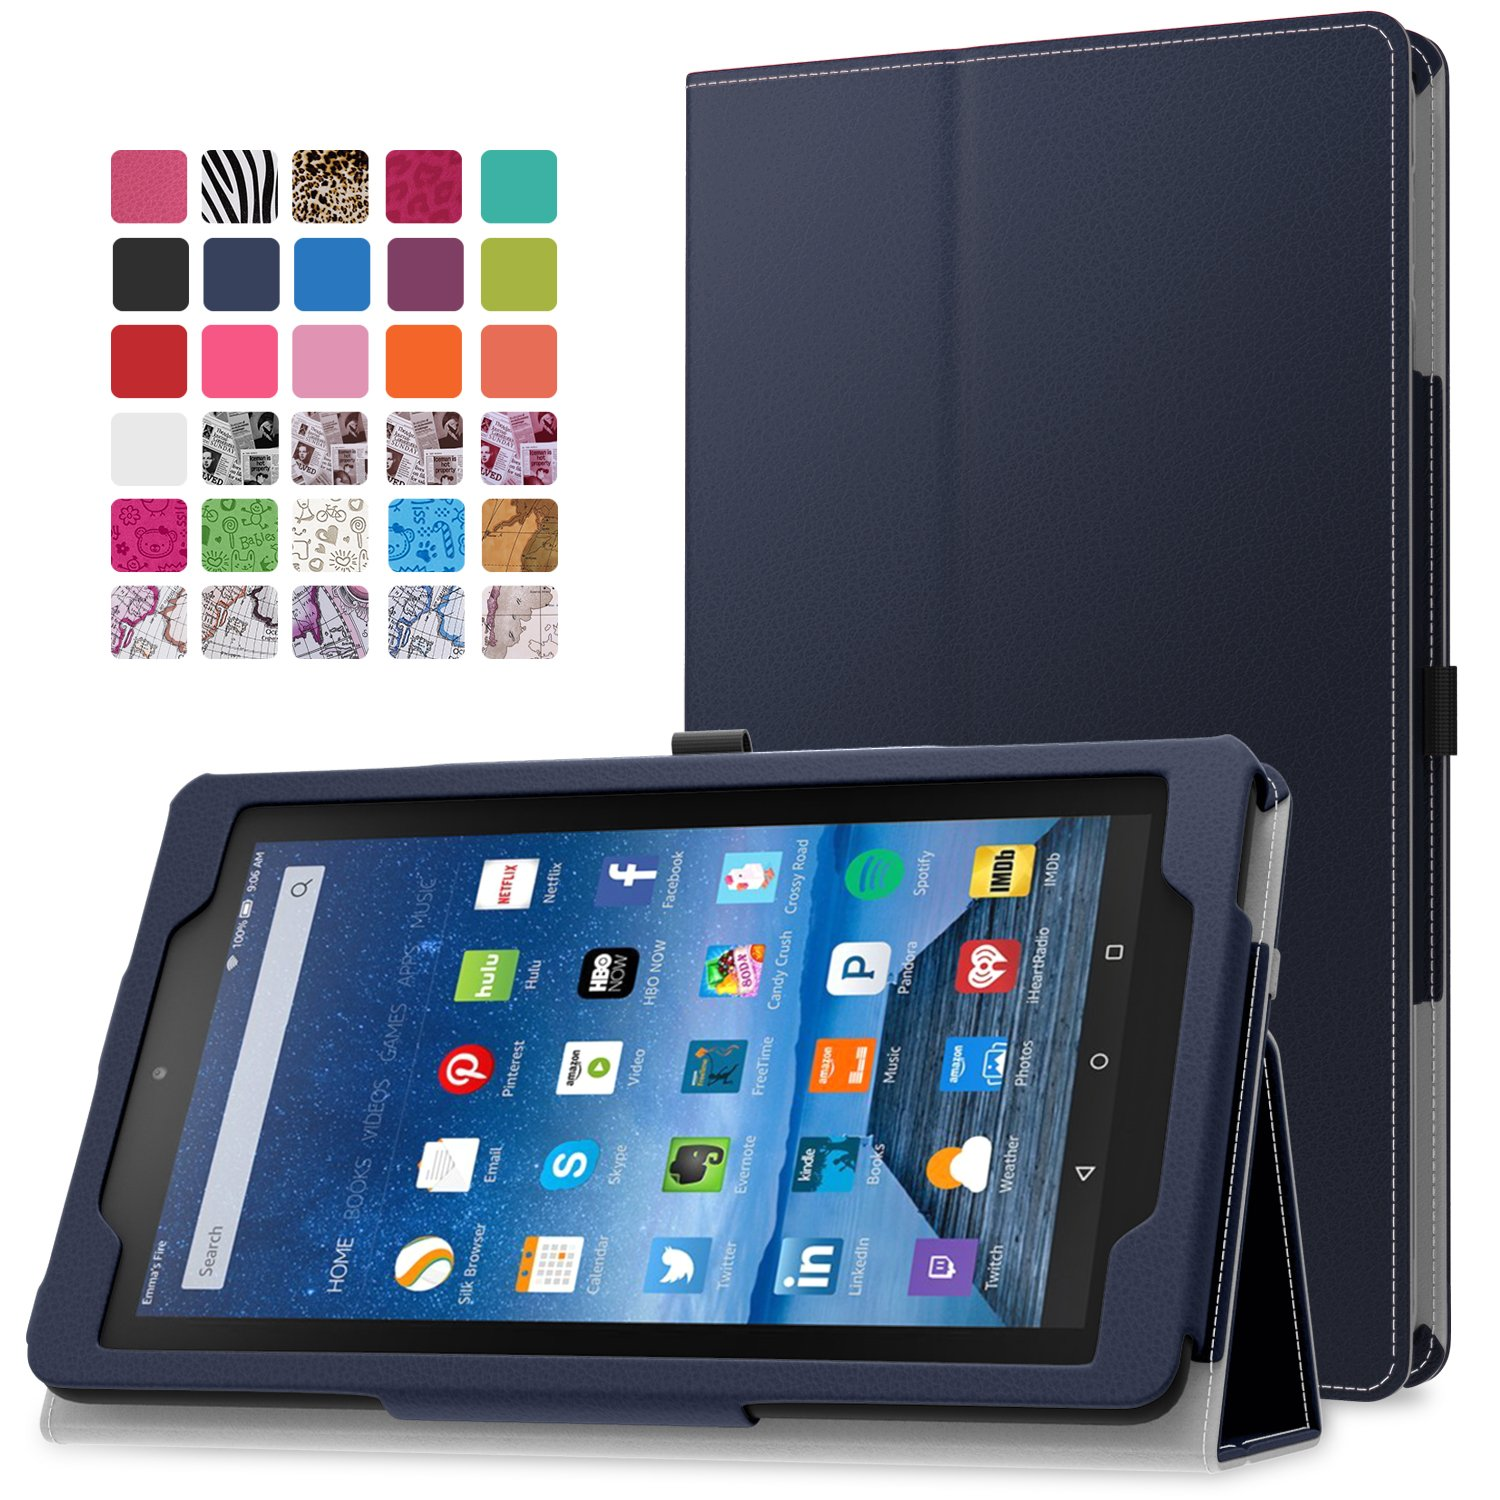 MoKo Fire 7 2015 Case - Slim Folding Cover for Amazon Fire Tablet (7 inch Display - 5th Generation, 2015 Release Only), INDIGO